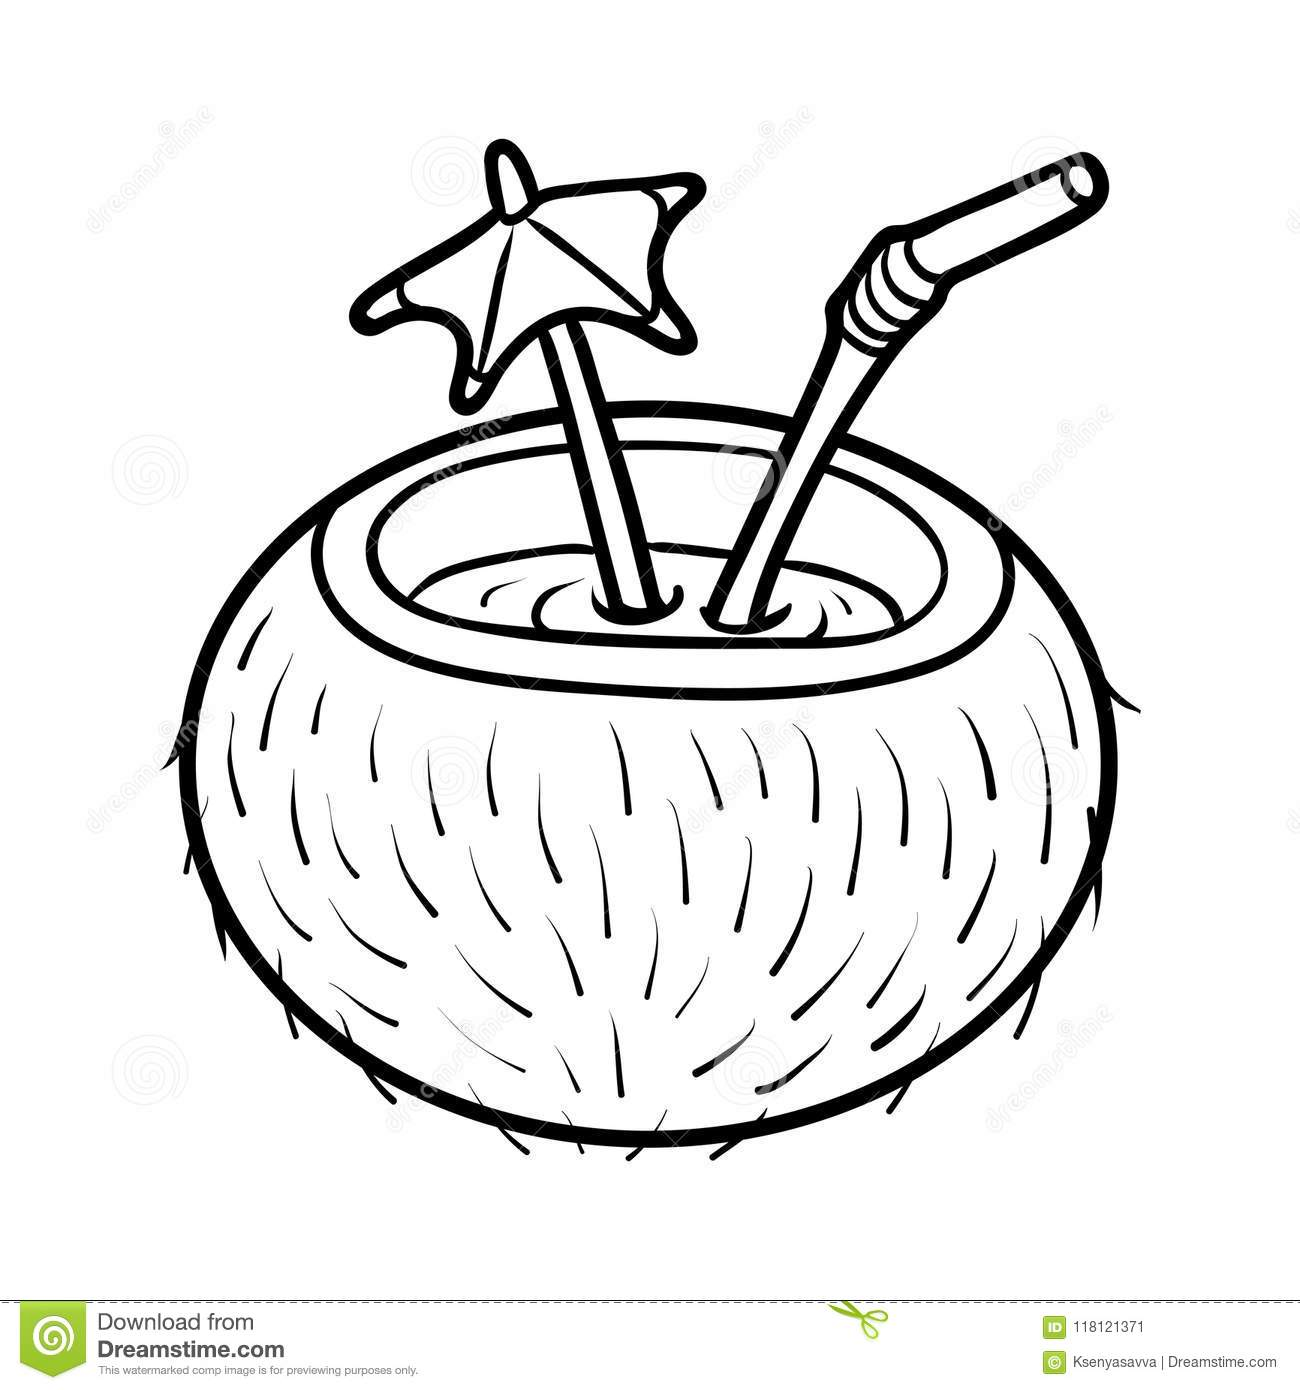 straw cartoons  illustrations  u0026 vector stock images